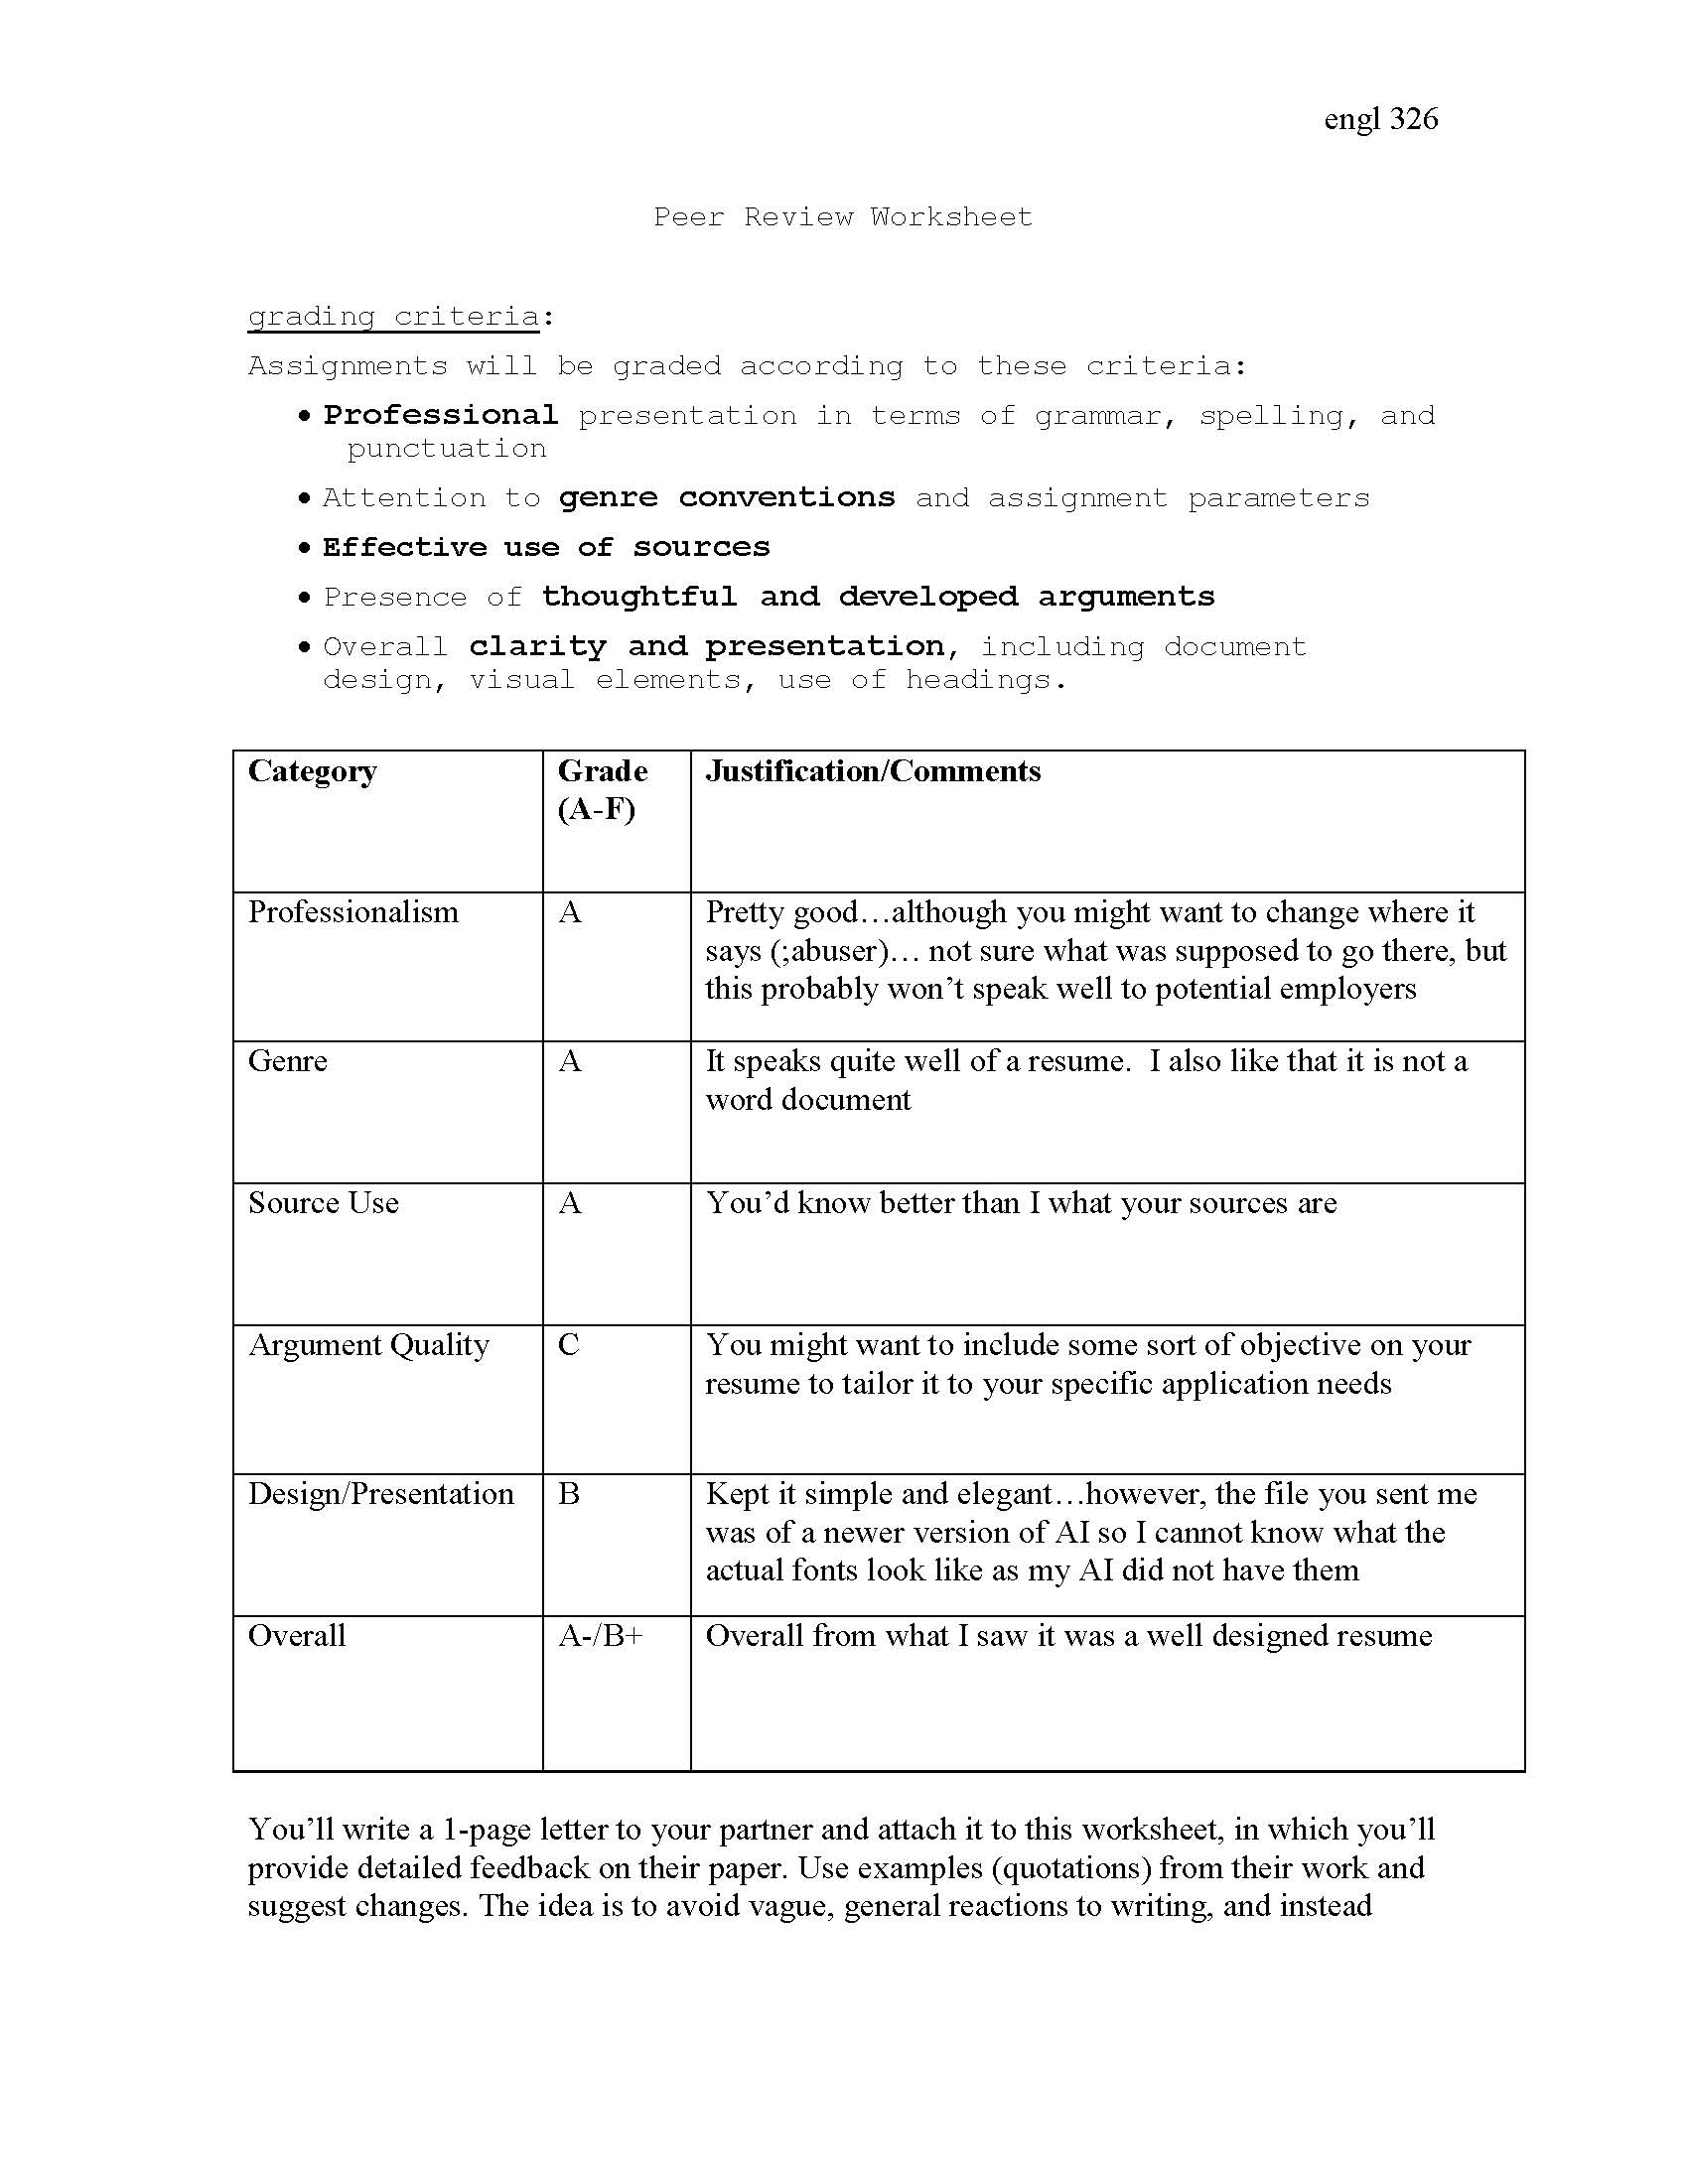 Worksheet Peer Review Worksheet Worksheet Fun Worksheet Study Site